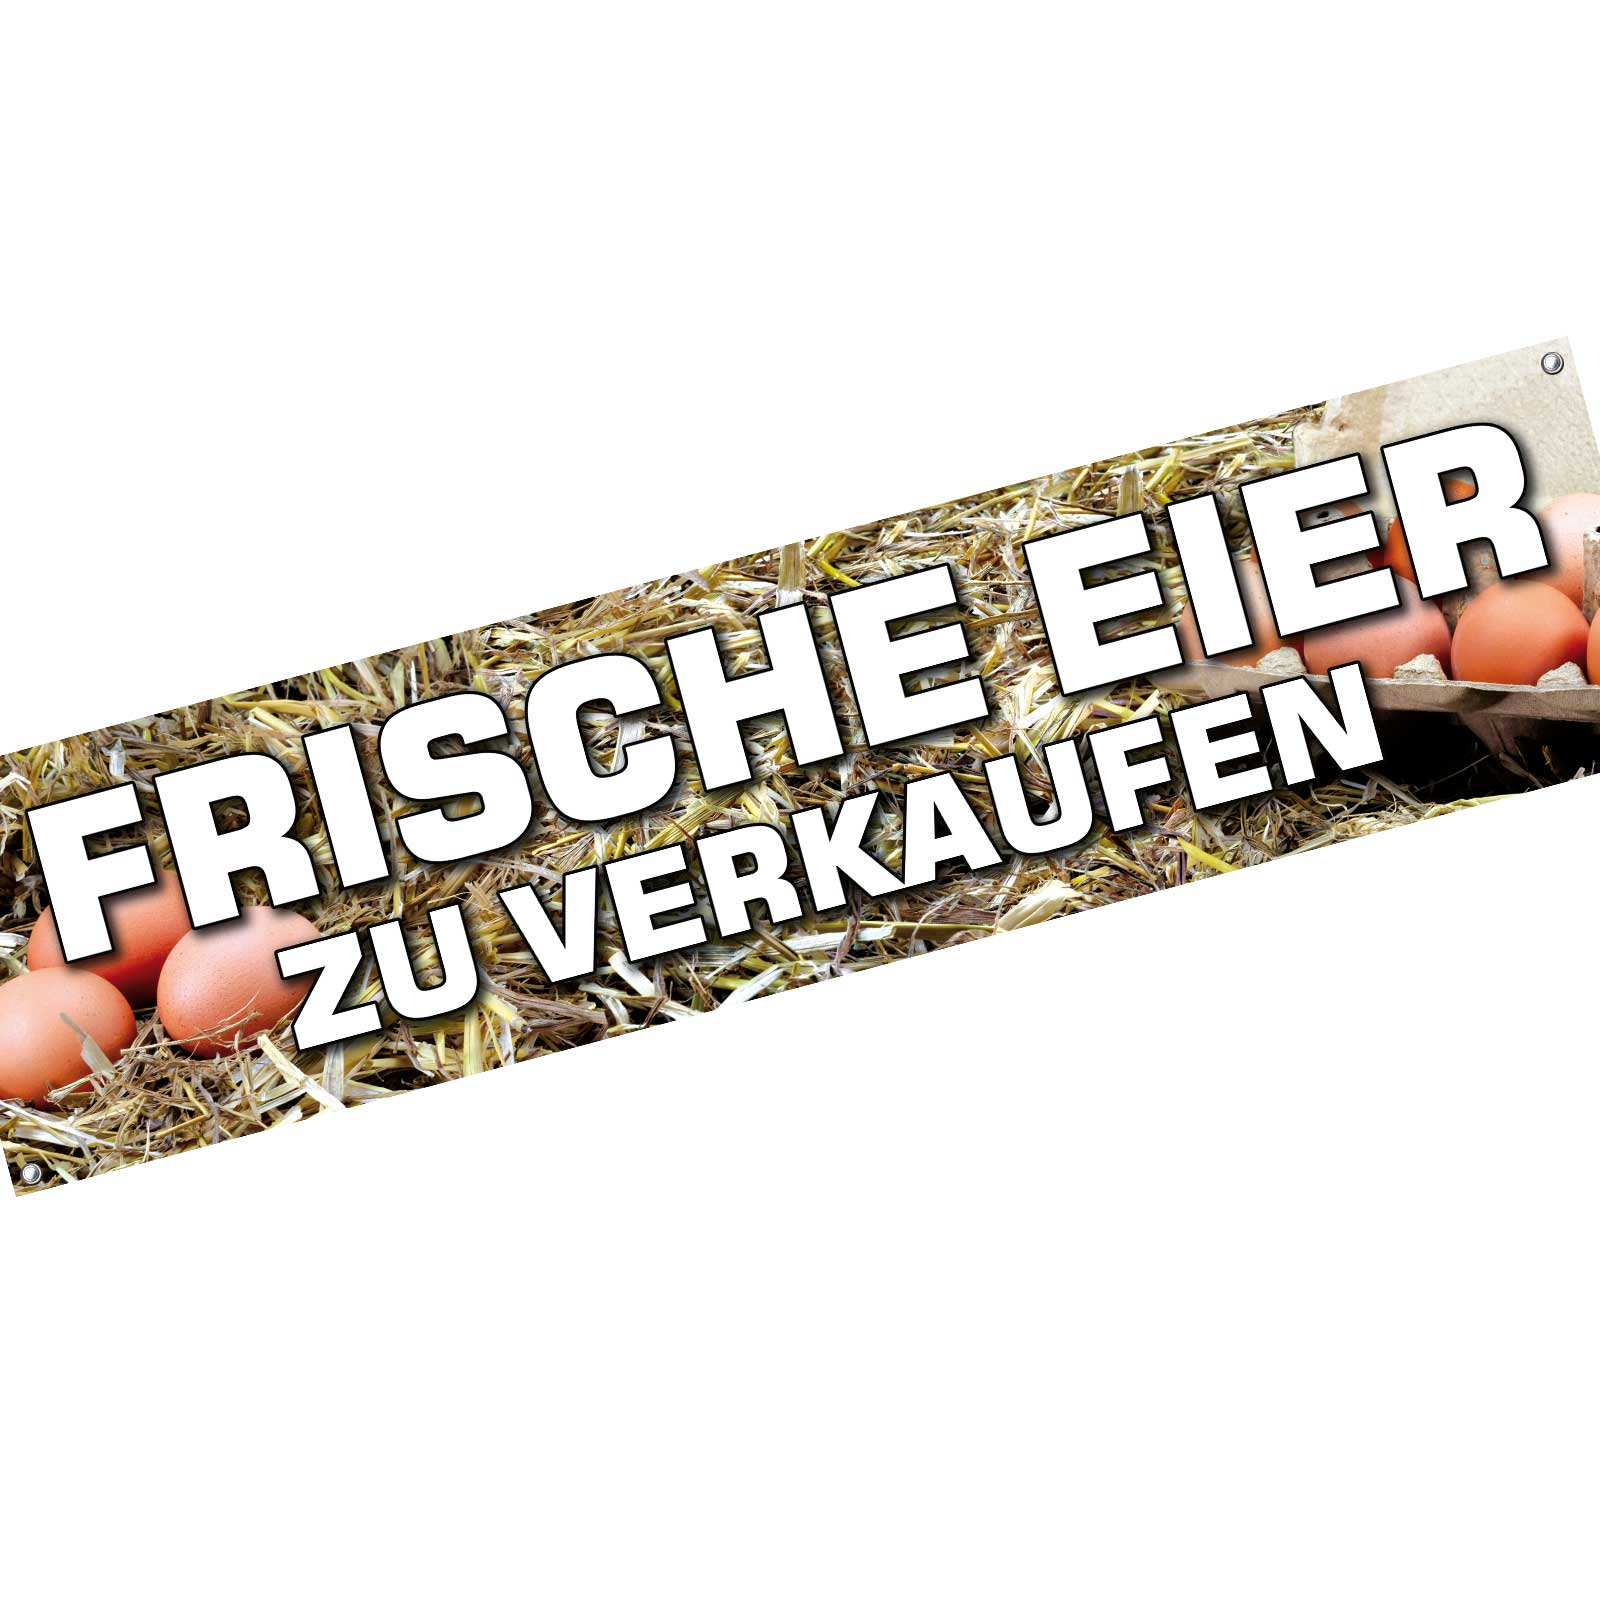 spannbanner banner werbebanner frische eier zu verkaufen 200 x 50 cm ebay. Black Bedroom Furniture Sets. Home Design Ideas